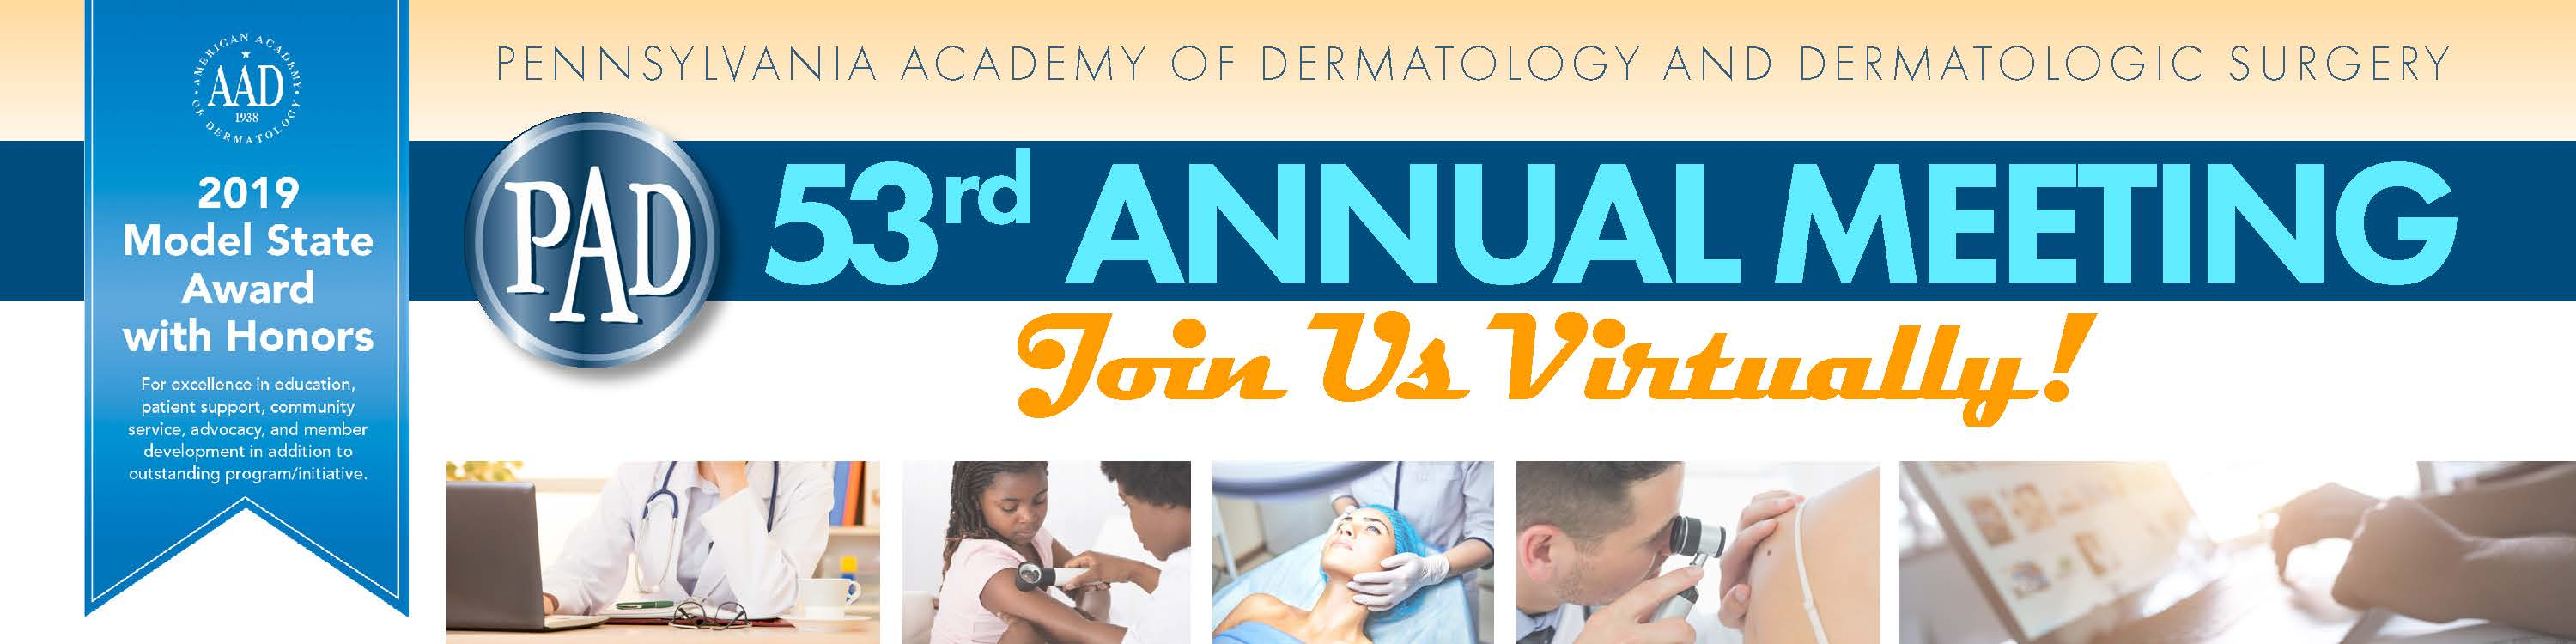 Pennsylvania Academy of Dermatology - 53rd Annual Meeting